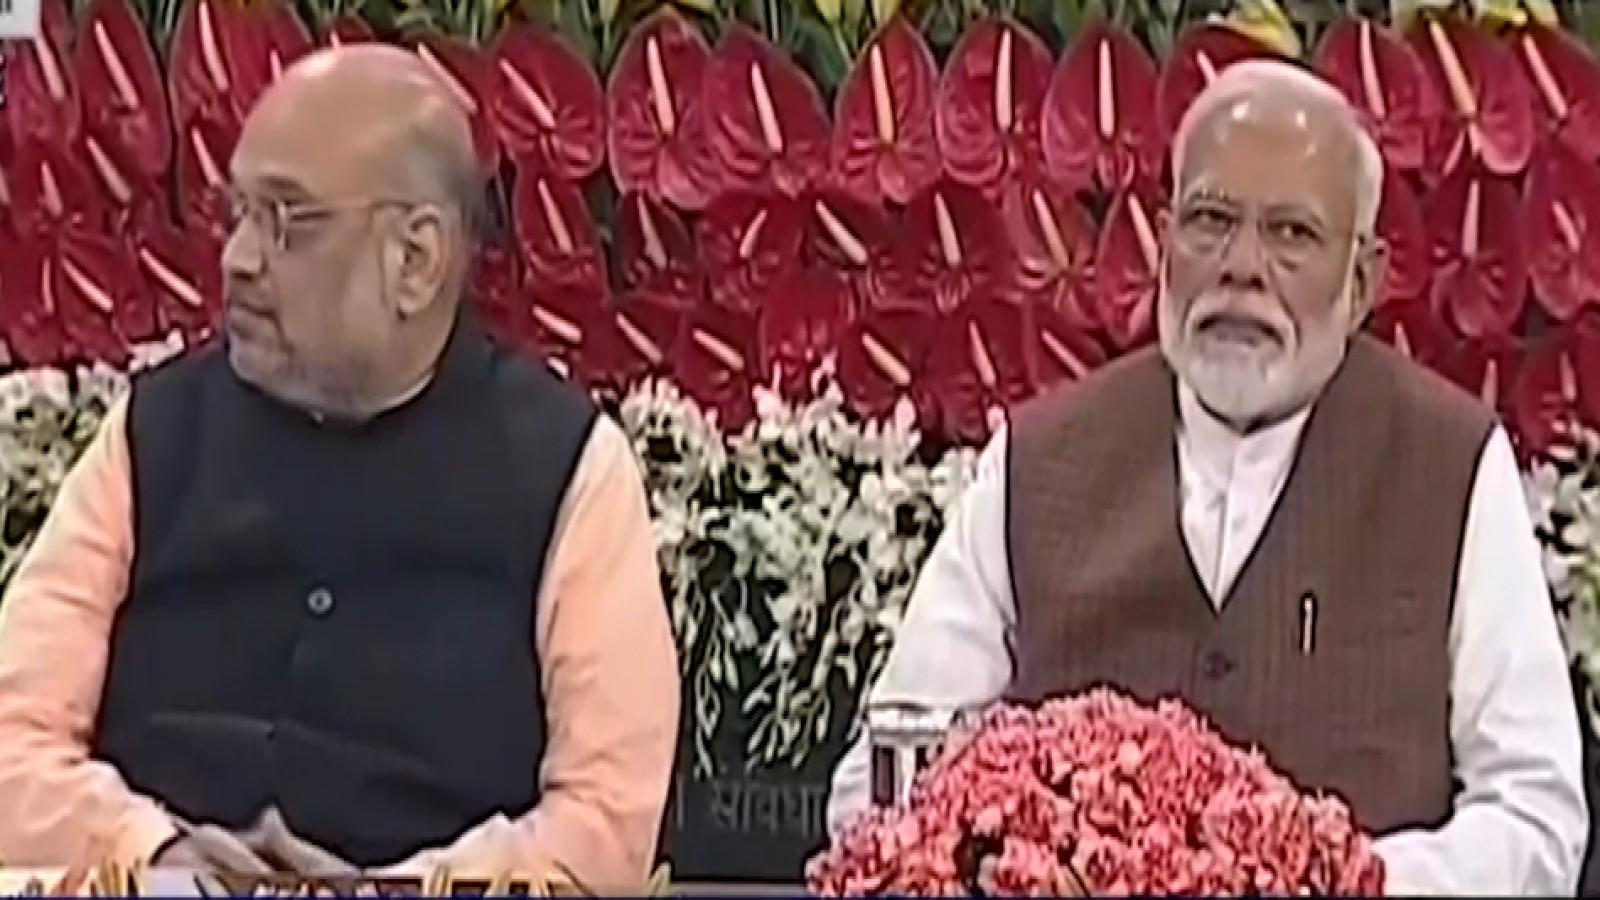 nda-elects-modi-as-its-leader-nominated-name-for-prime-minister